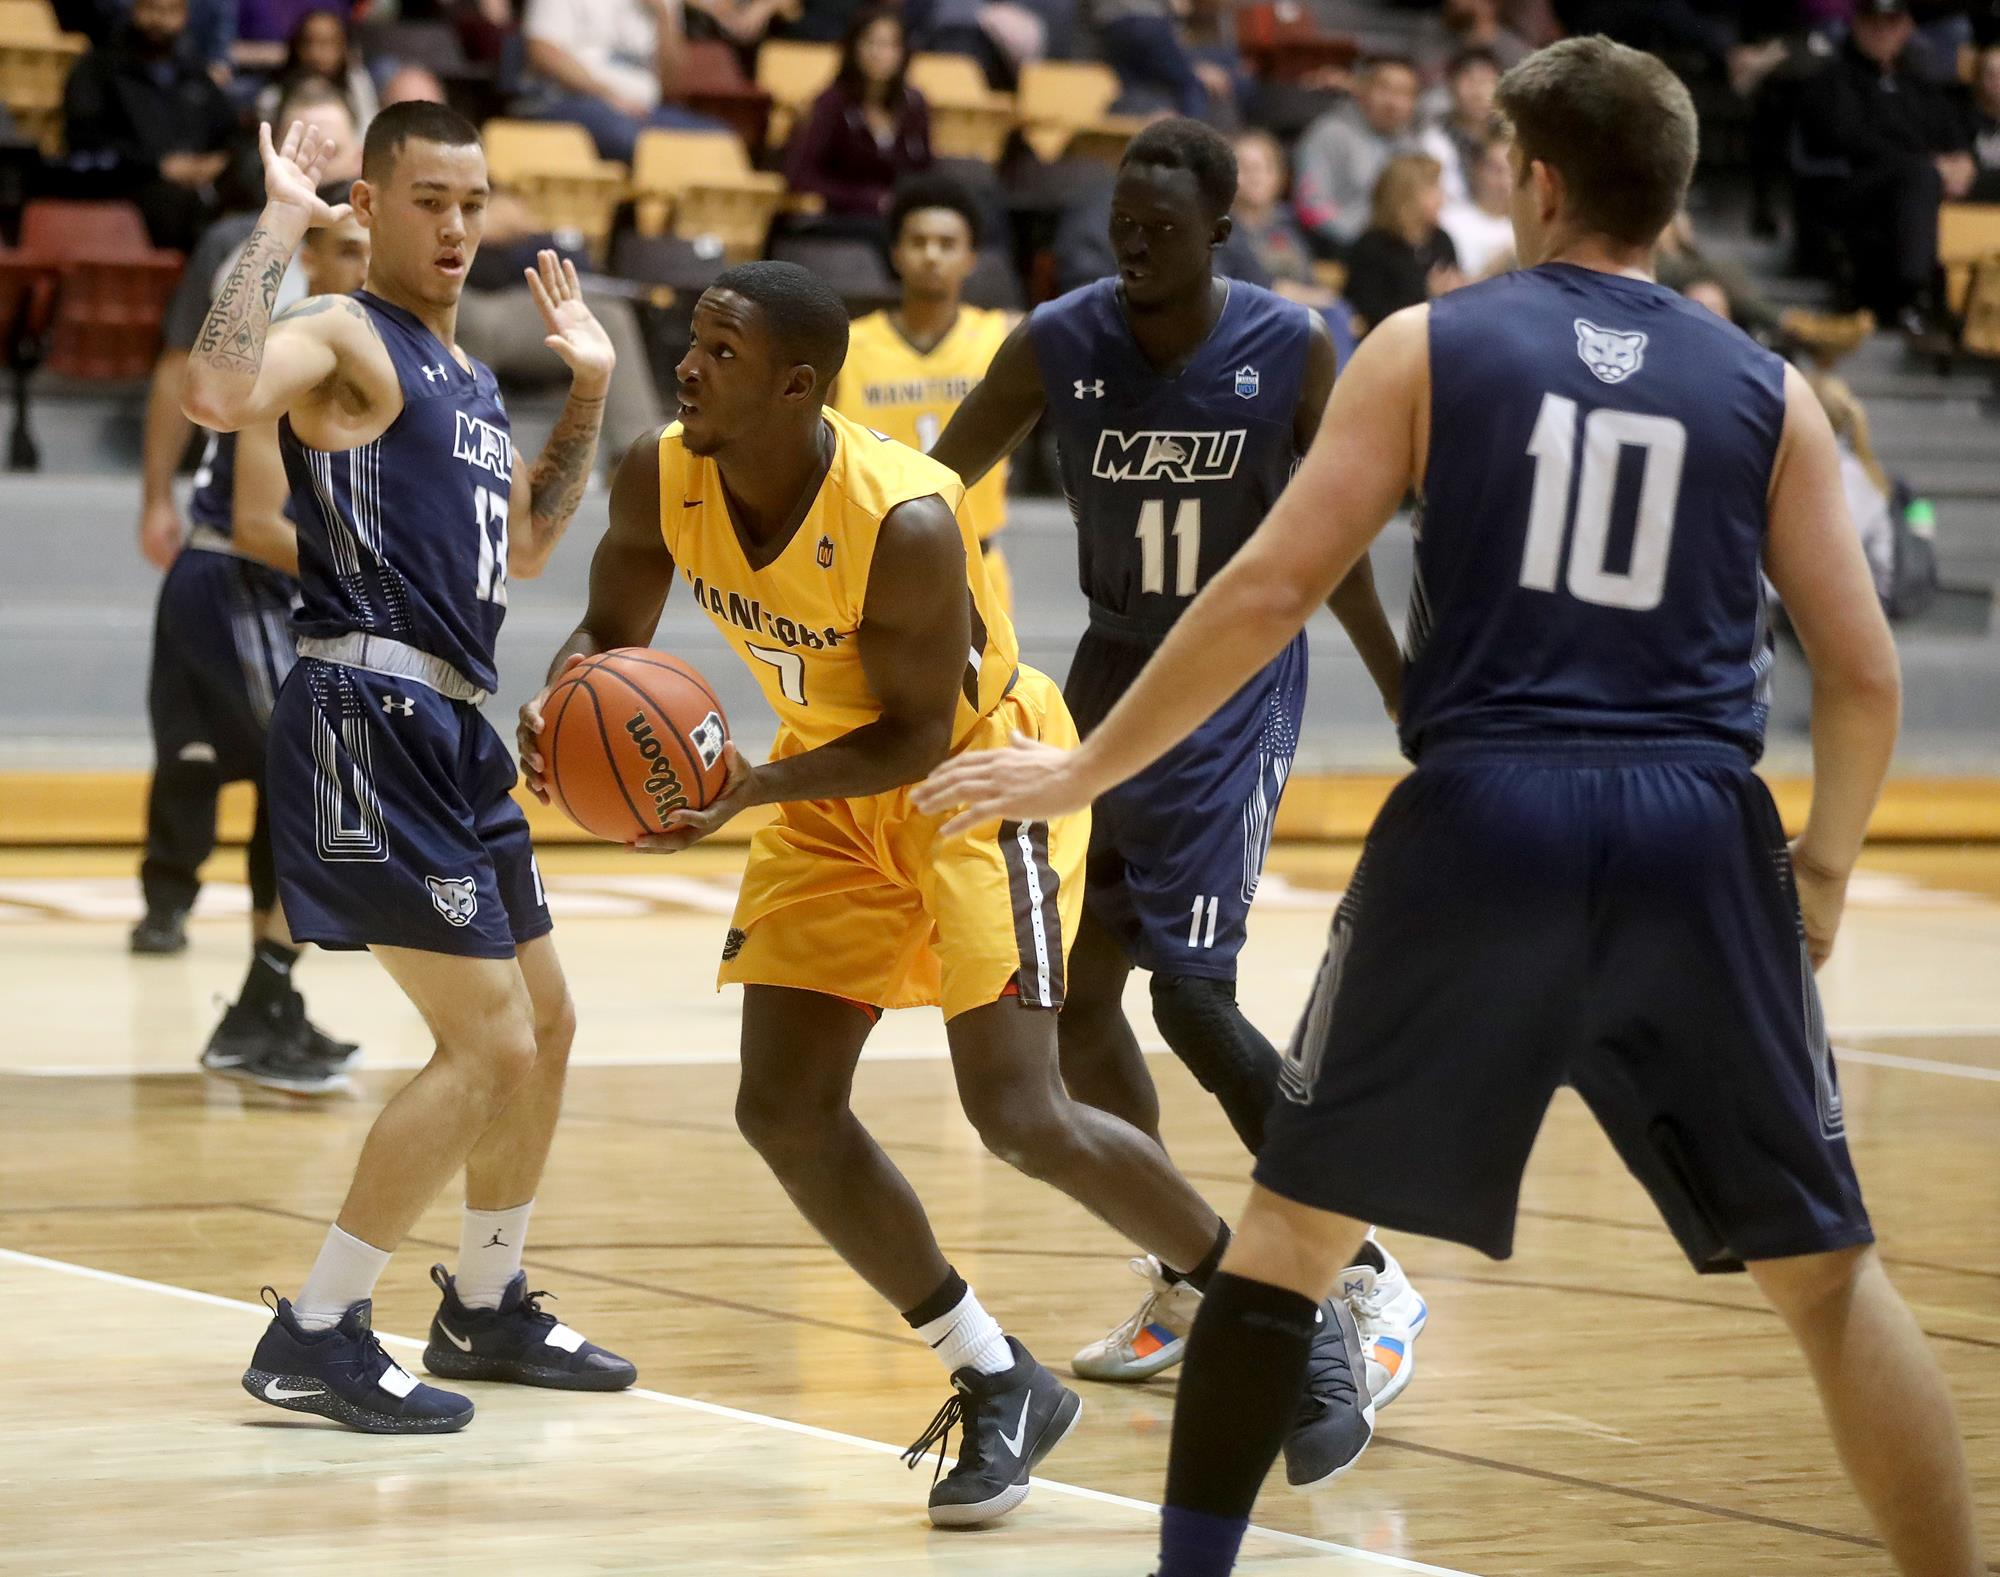 men's basketball - university of manitoba athletics